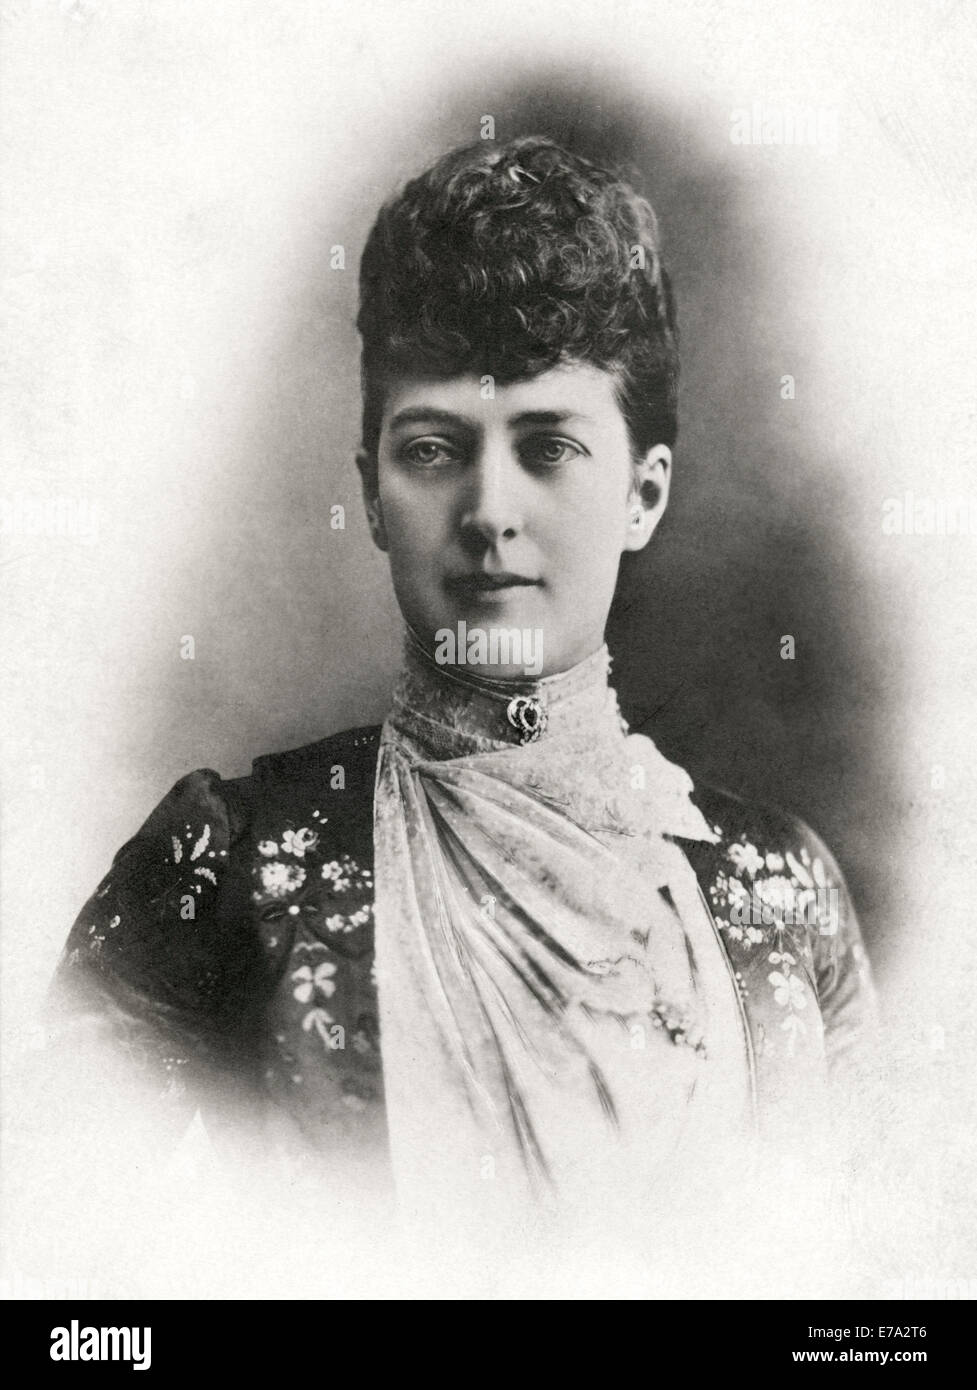 Alexandra of Denmark (1844-1925), Queen Consort of United Kingdom and Empress of India as Wife of King Edward VII, - Stock Image